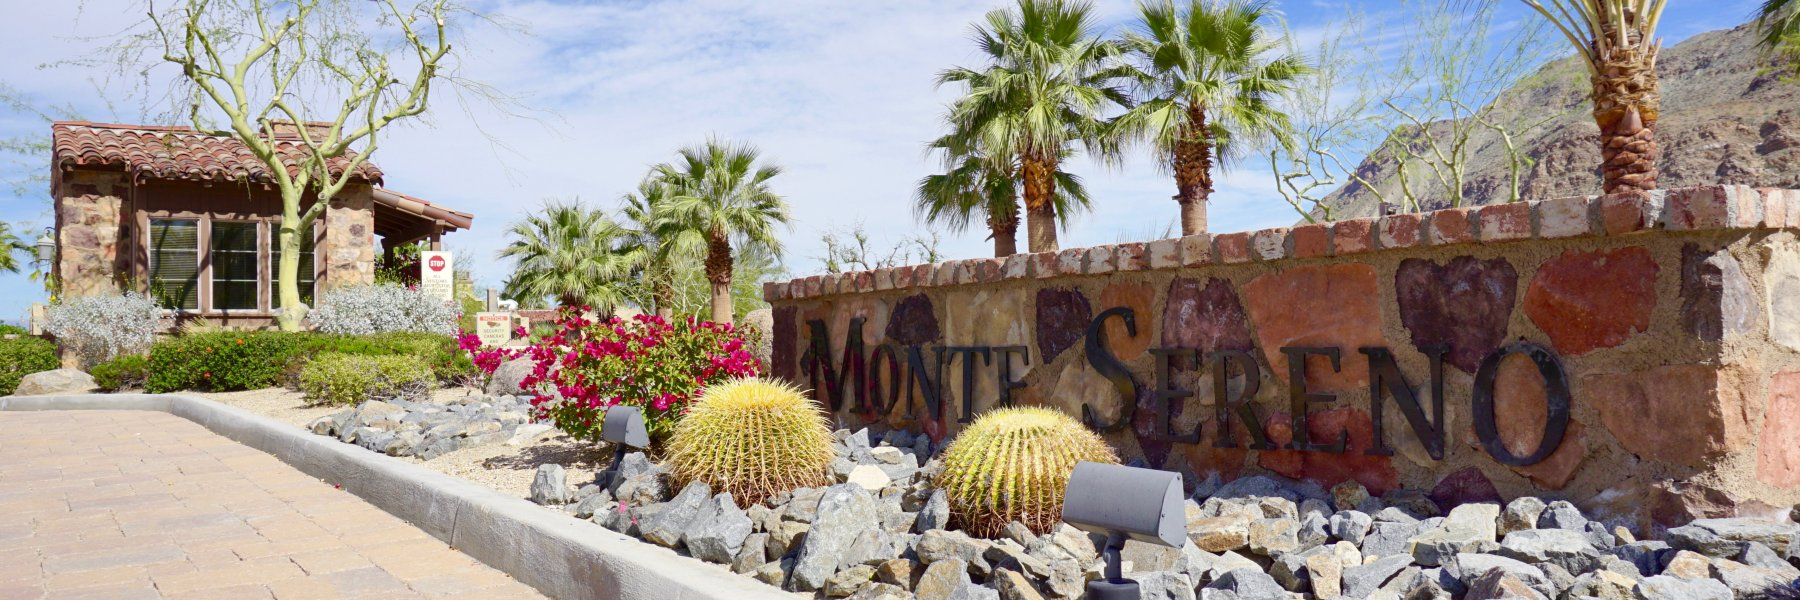 Monte Sereno is a community of homes in Palm Springs California